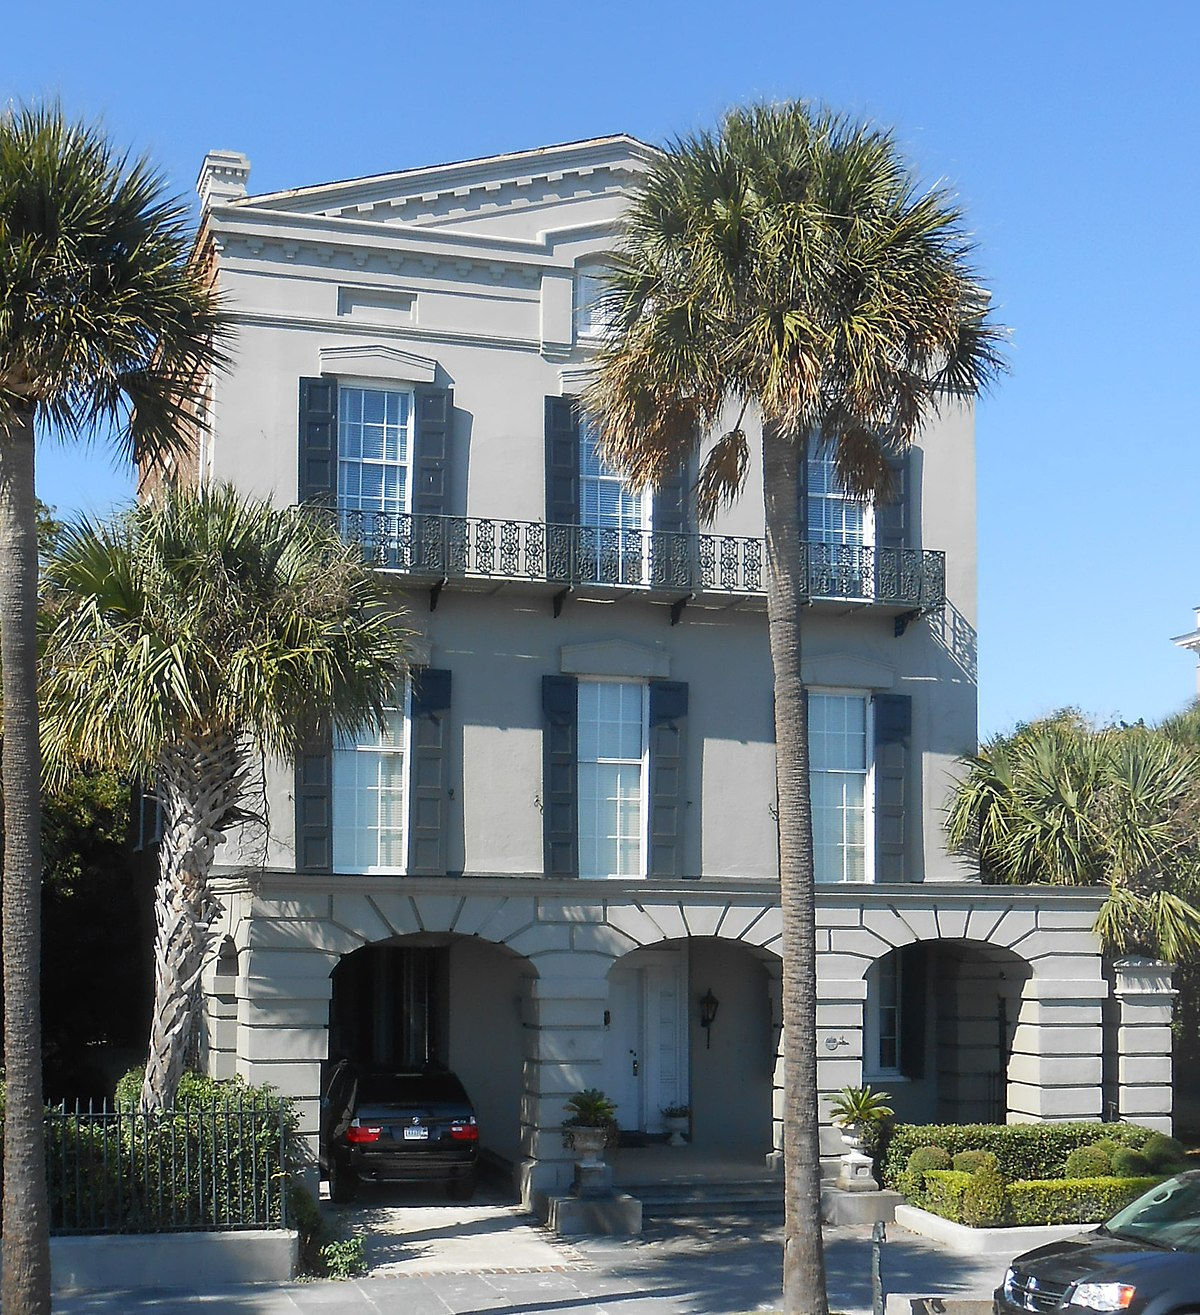 Spring Break 2011 likewise CA as well Girl S Weekend Guide To Charleston South Carolina besides Gallery besides James Island. on the elliott house charleston sc